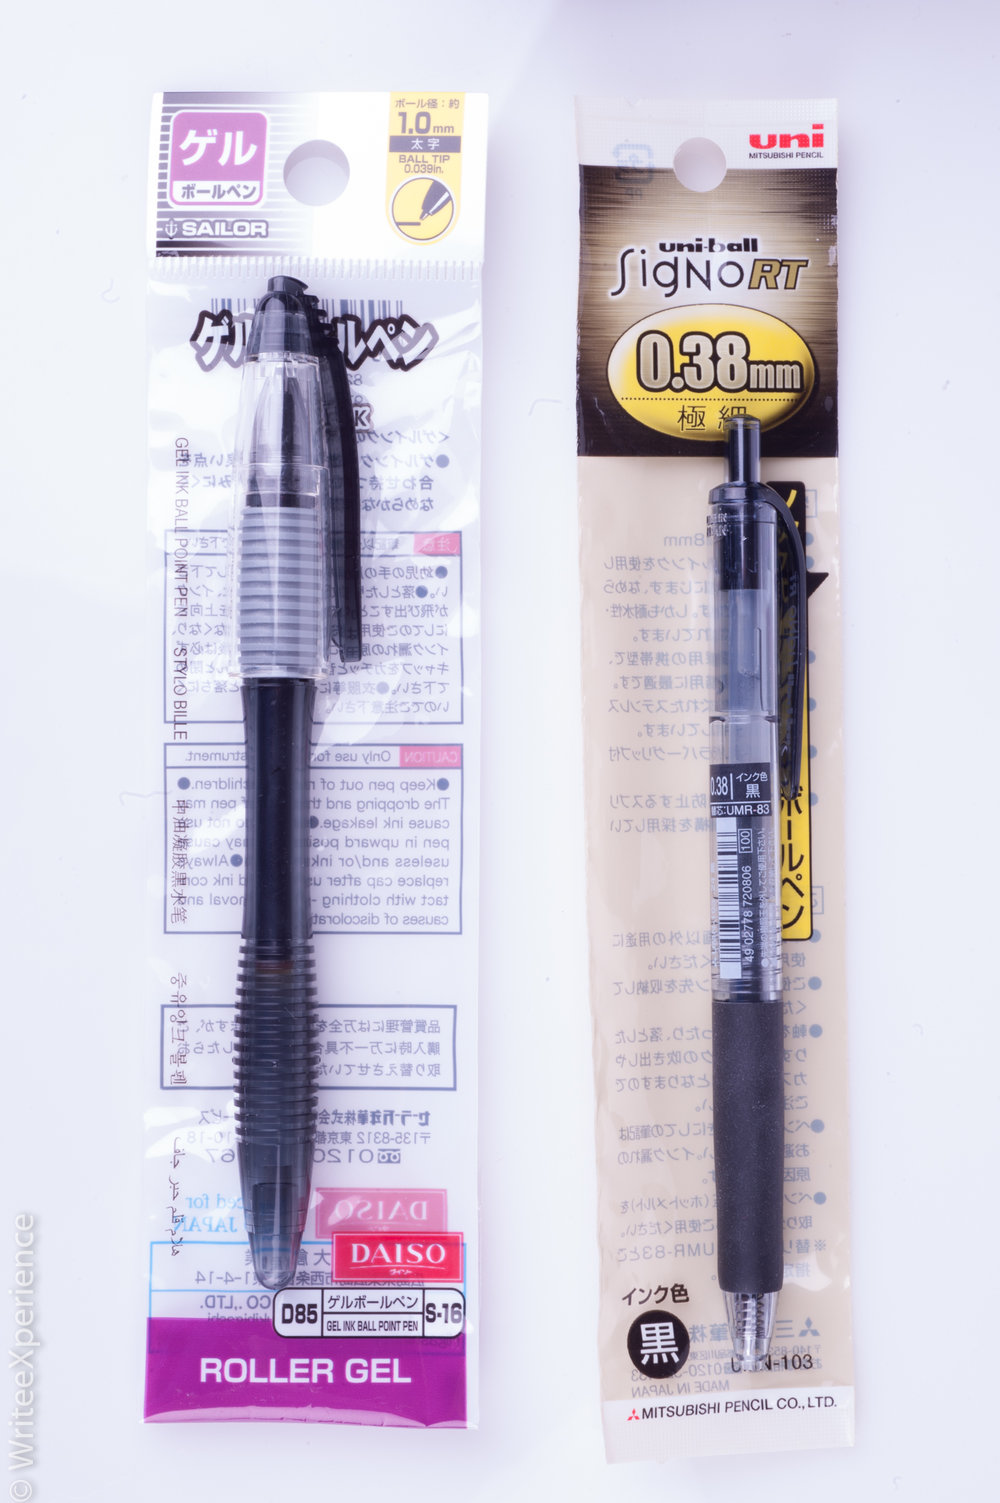 WriteeXperience-Daiso-Sailor-Roller-Gel-Uni-Ball-signo-rt